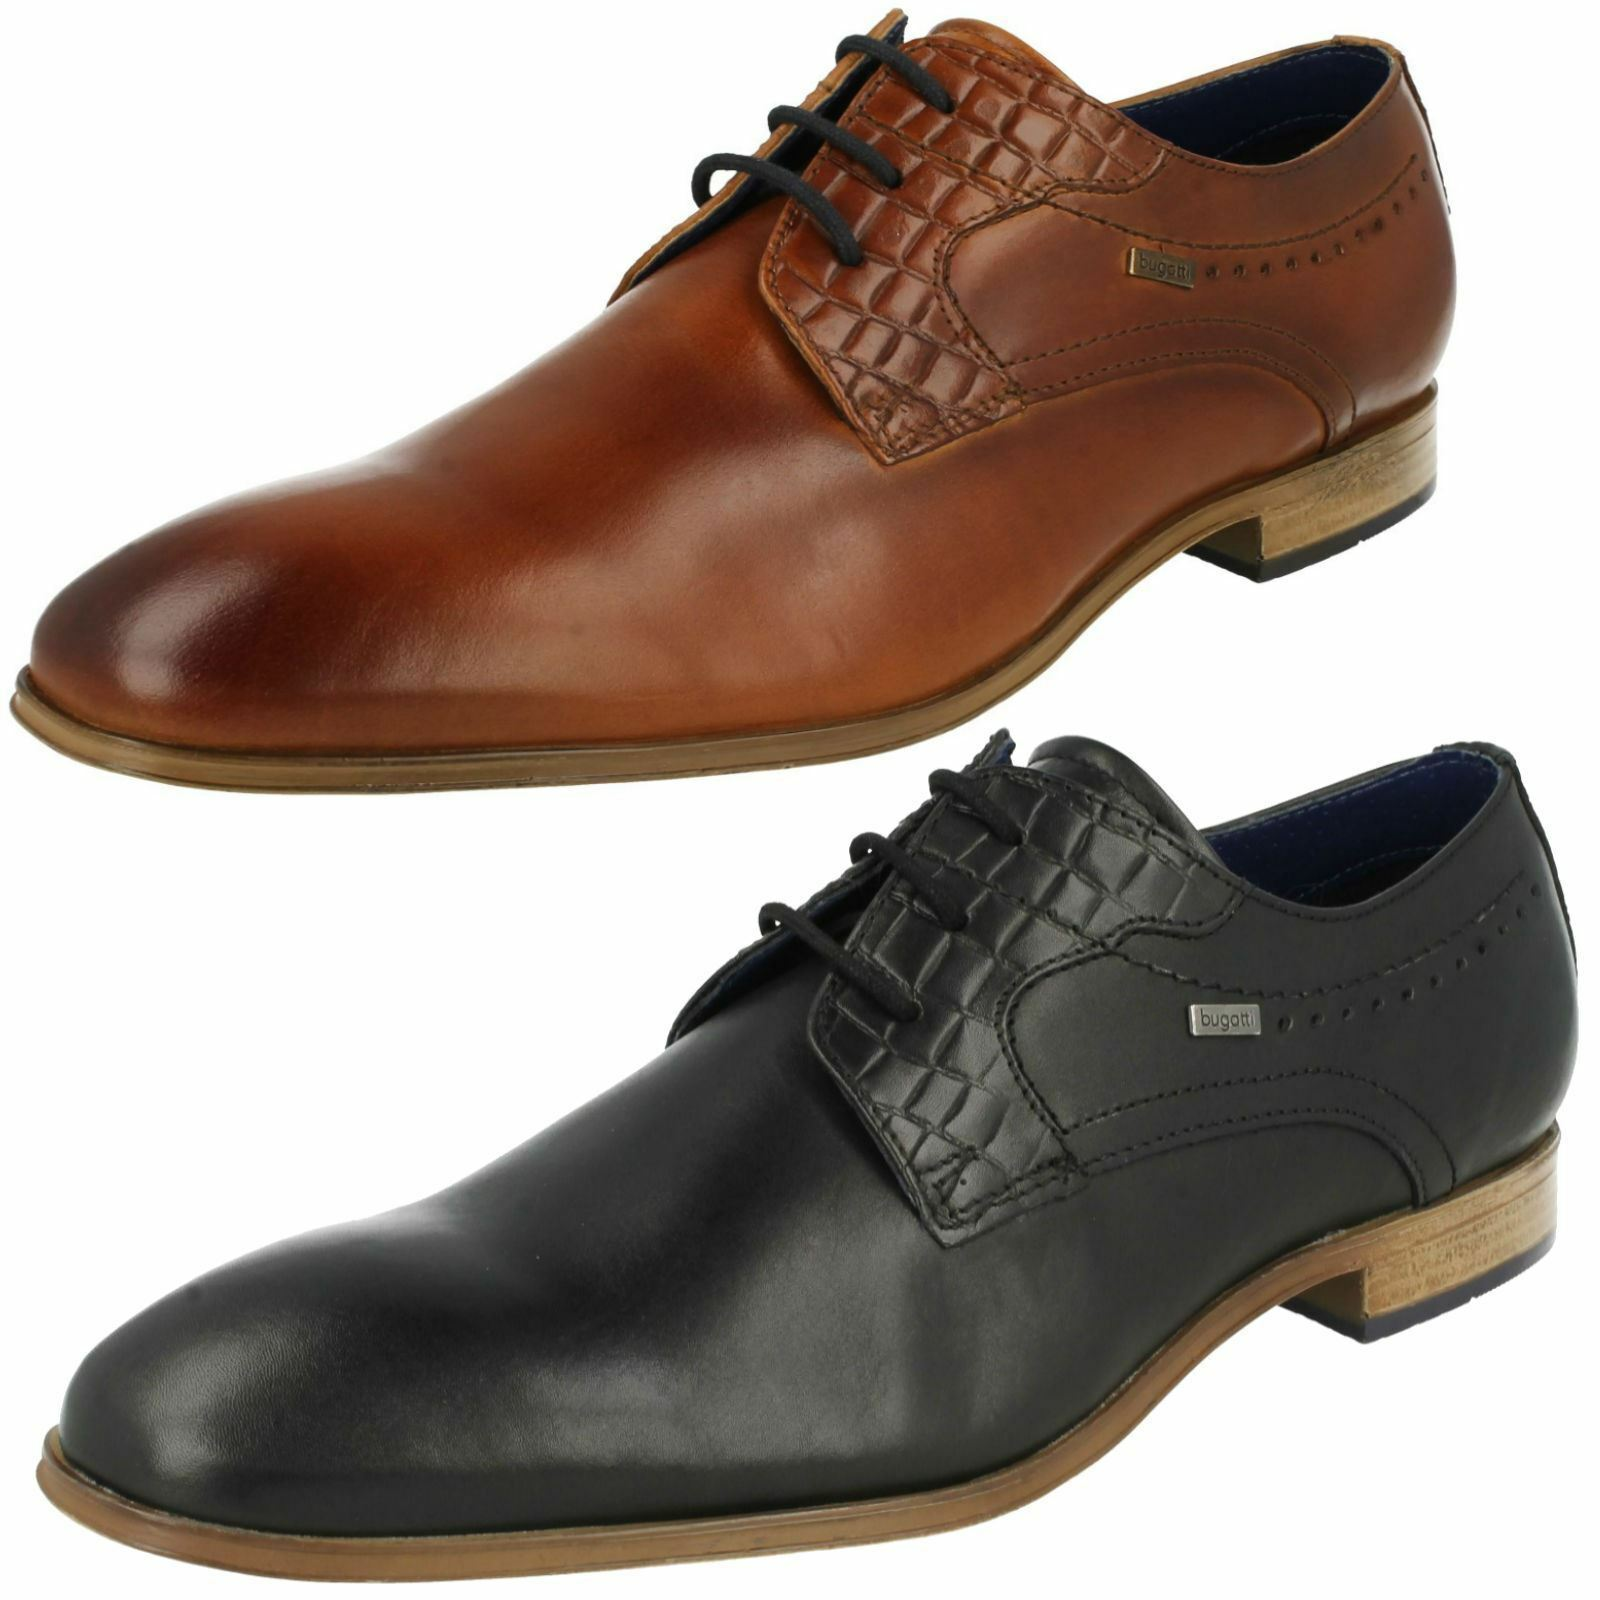 MENS BUGATTI LEATHER LACE UP SMART FORMAL OFFICE WEDDING SHOES 311-25202